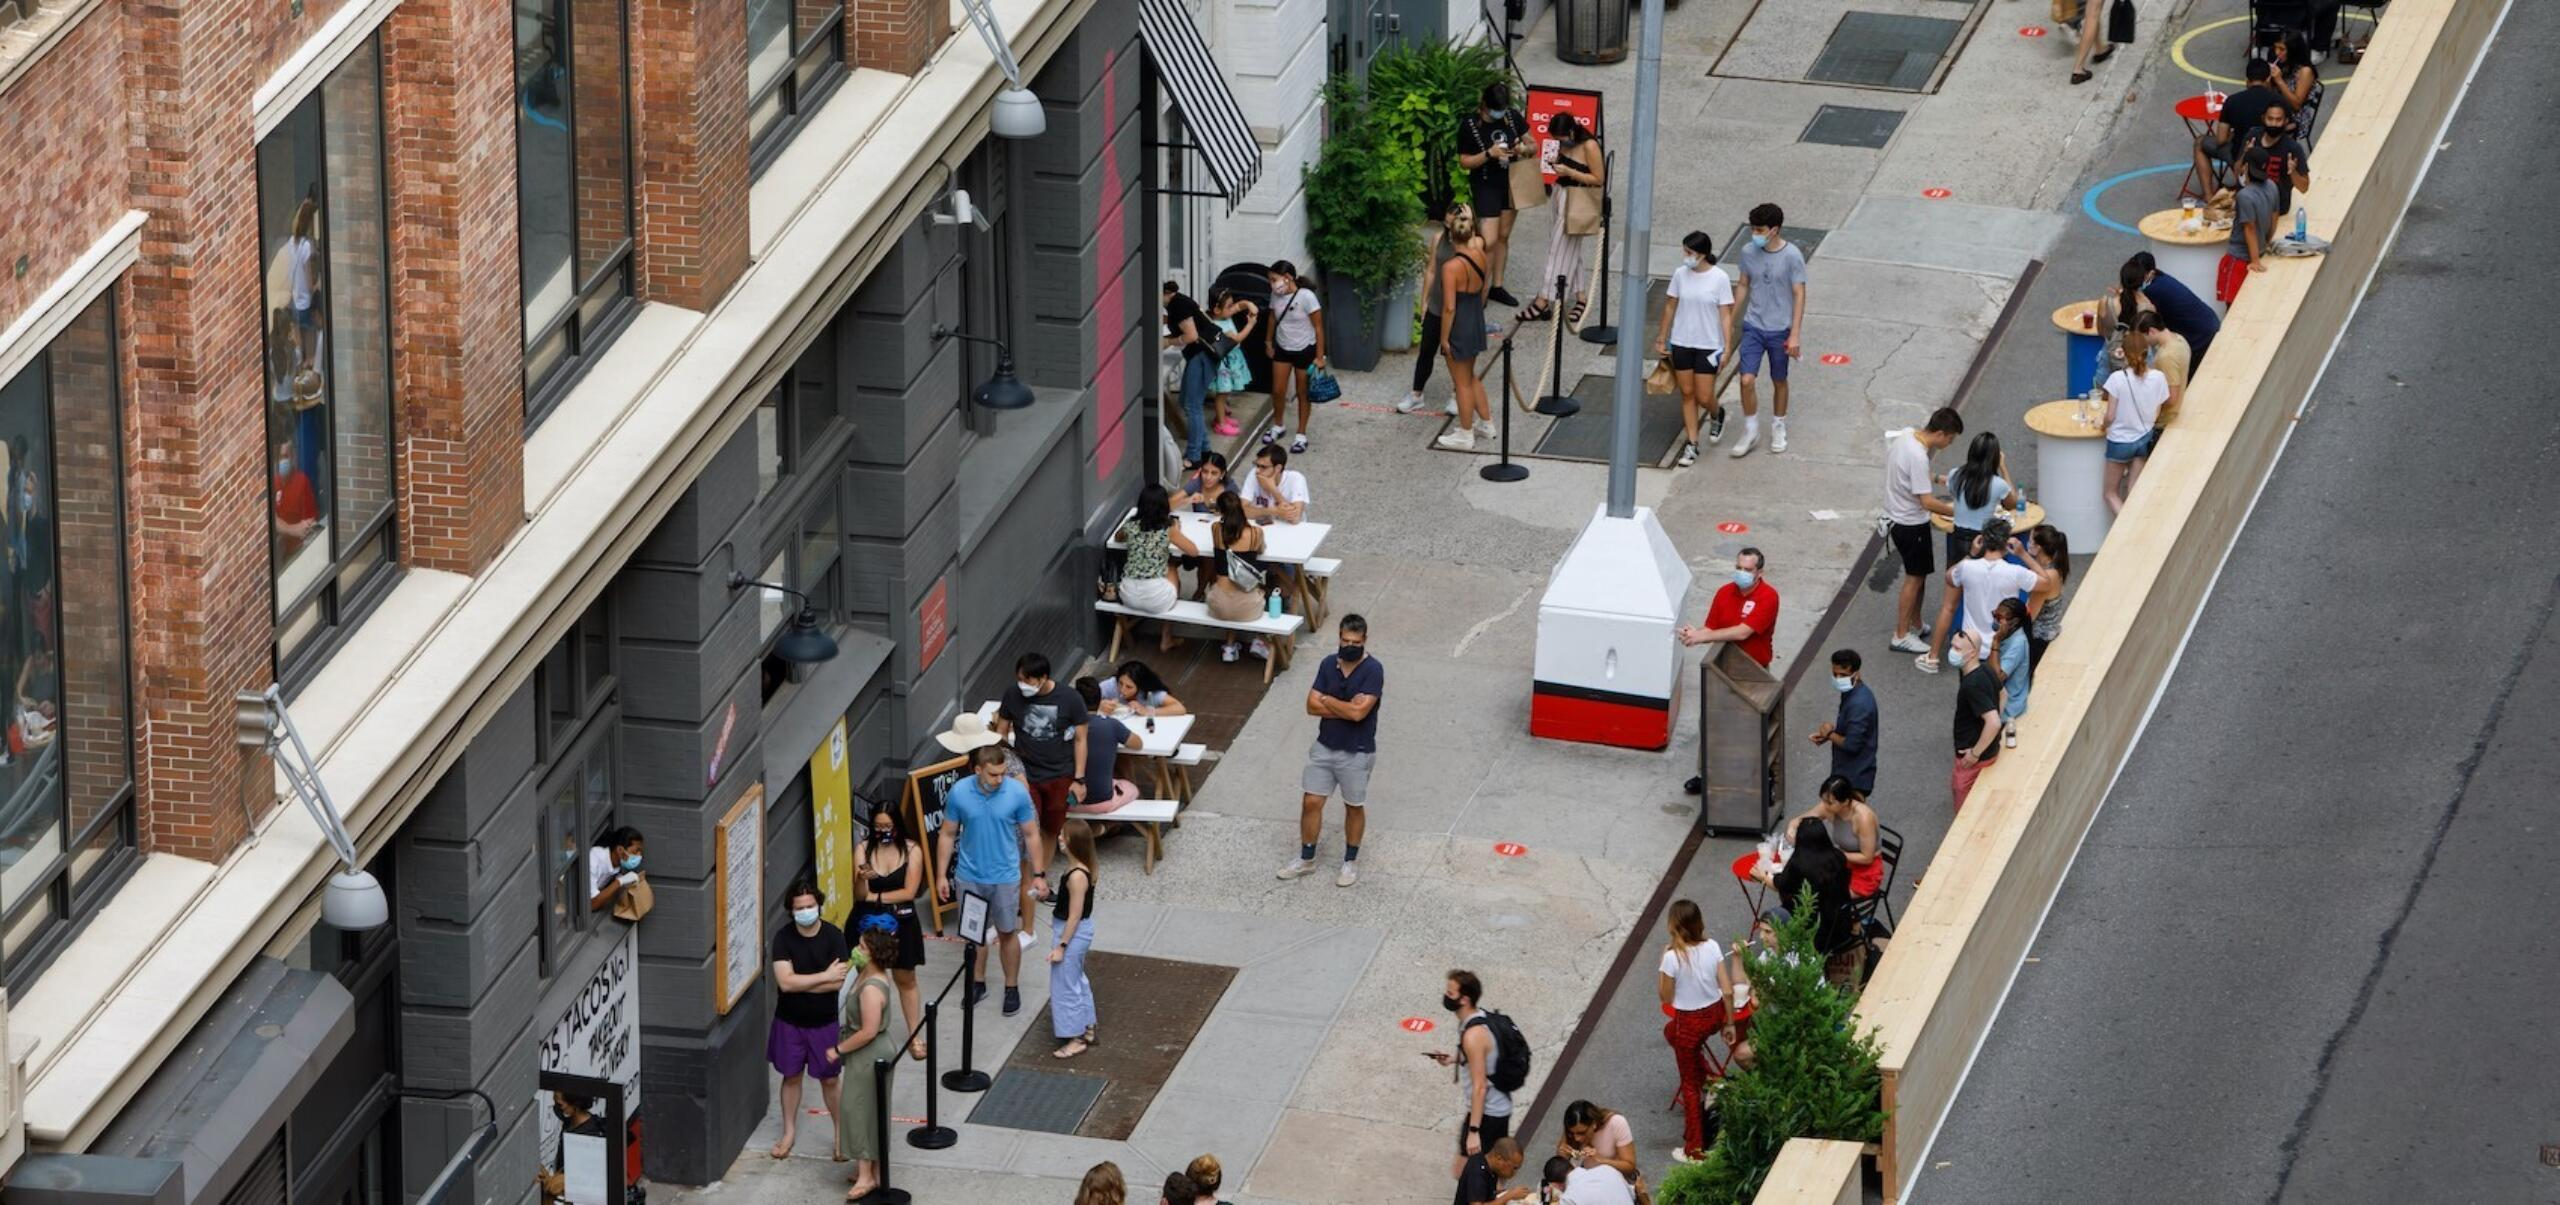 Overhead view of outdoor dining on sidewalk by Chelsea Market, with people at tables and pick-up windows